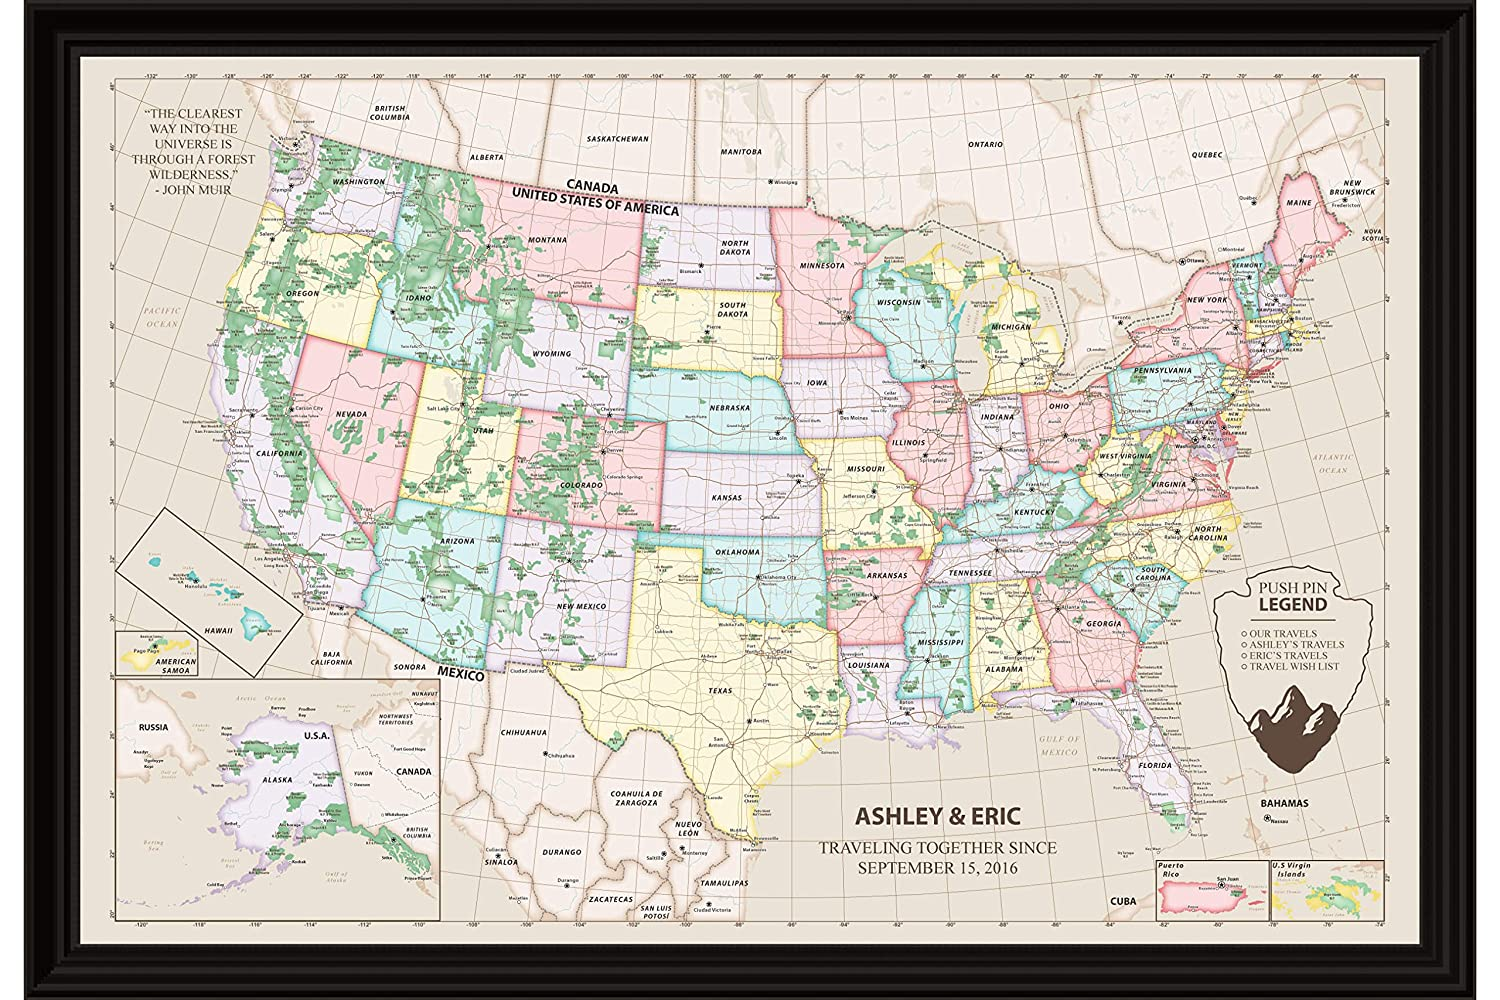 Personalized Usa Map.Amazon Com Personalized Usa Travel Map Canvas Custom Us National